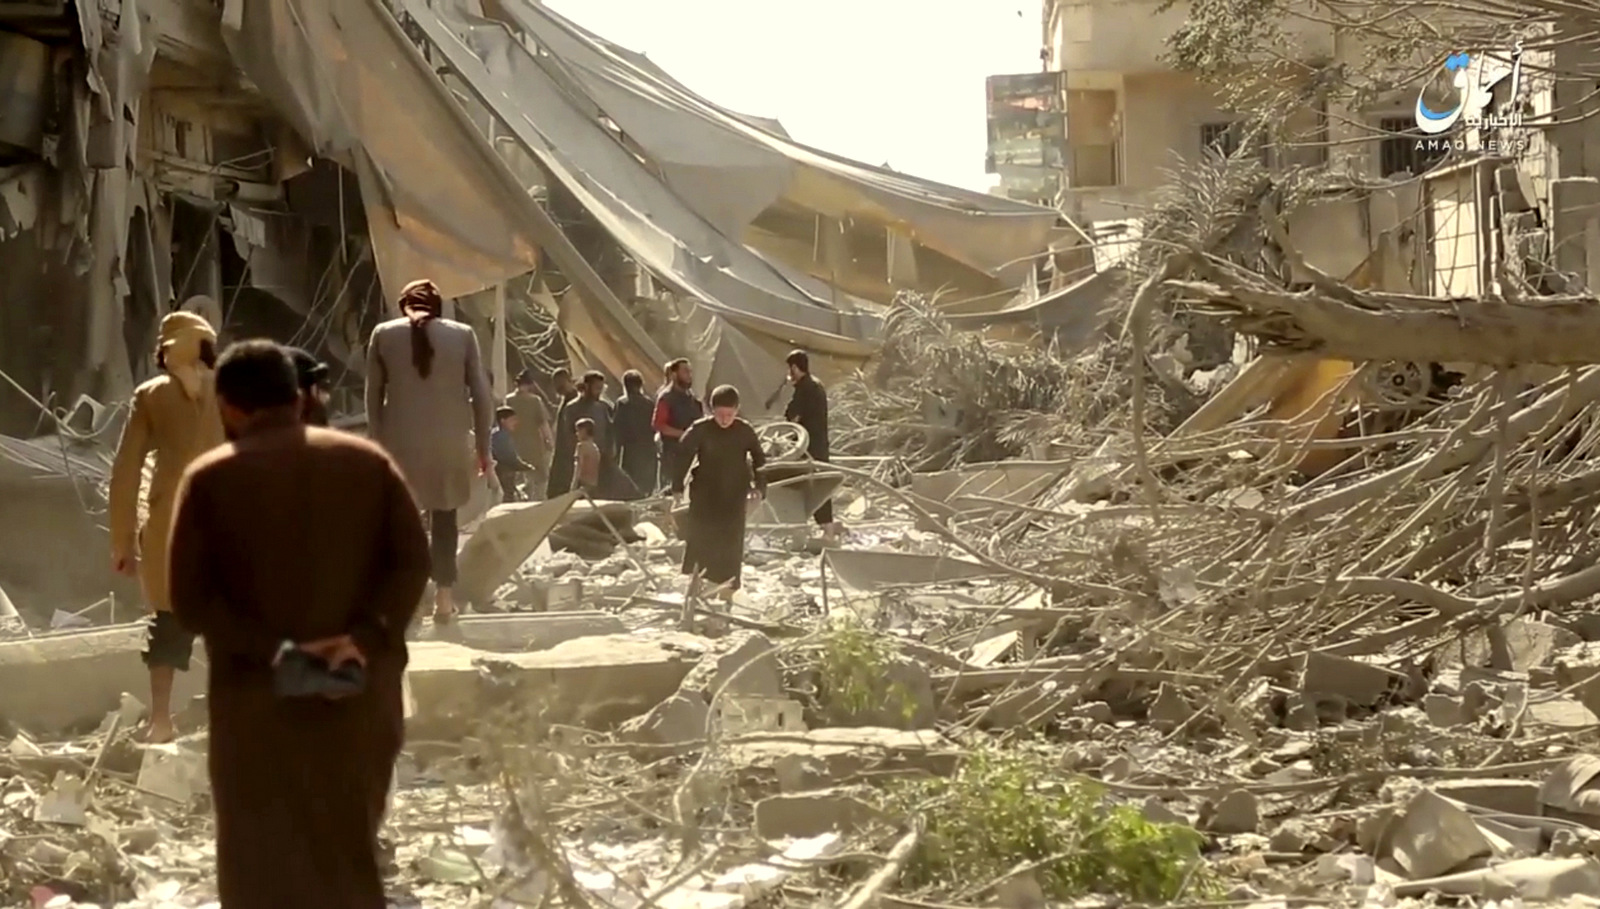 People inspect damage from US coalition airstrikes and artillery shelling in the northern Syrian city of Raqqa, Syria, May 29, 2017. (Aamaq via AP)